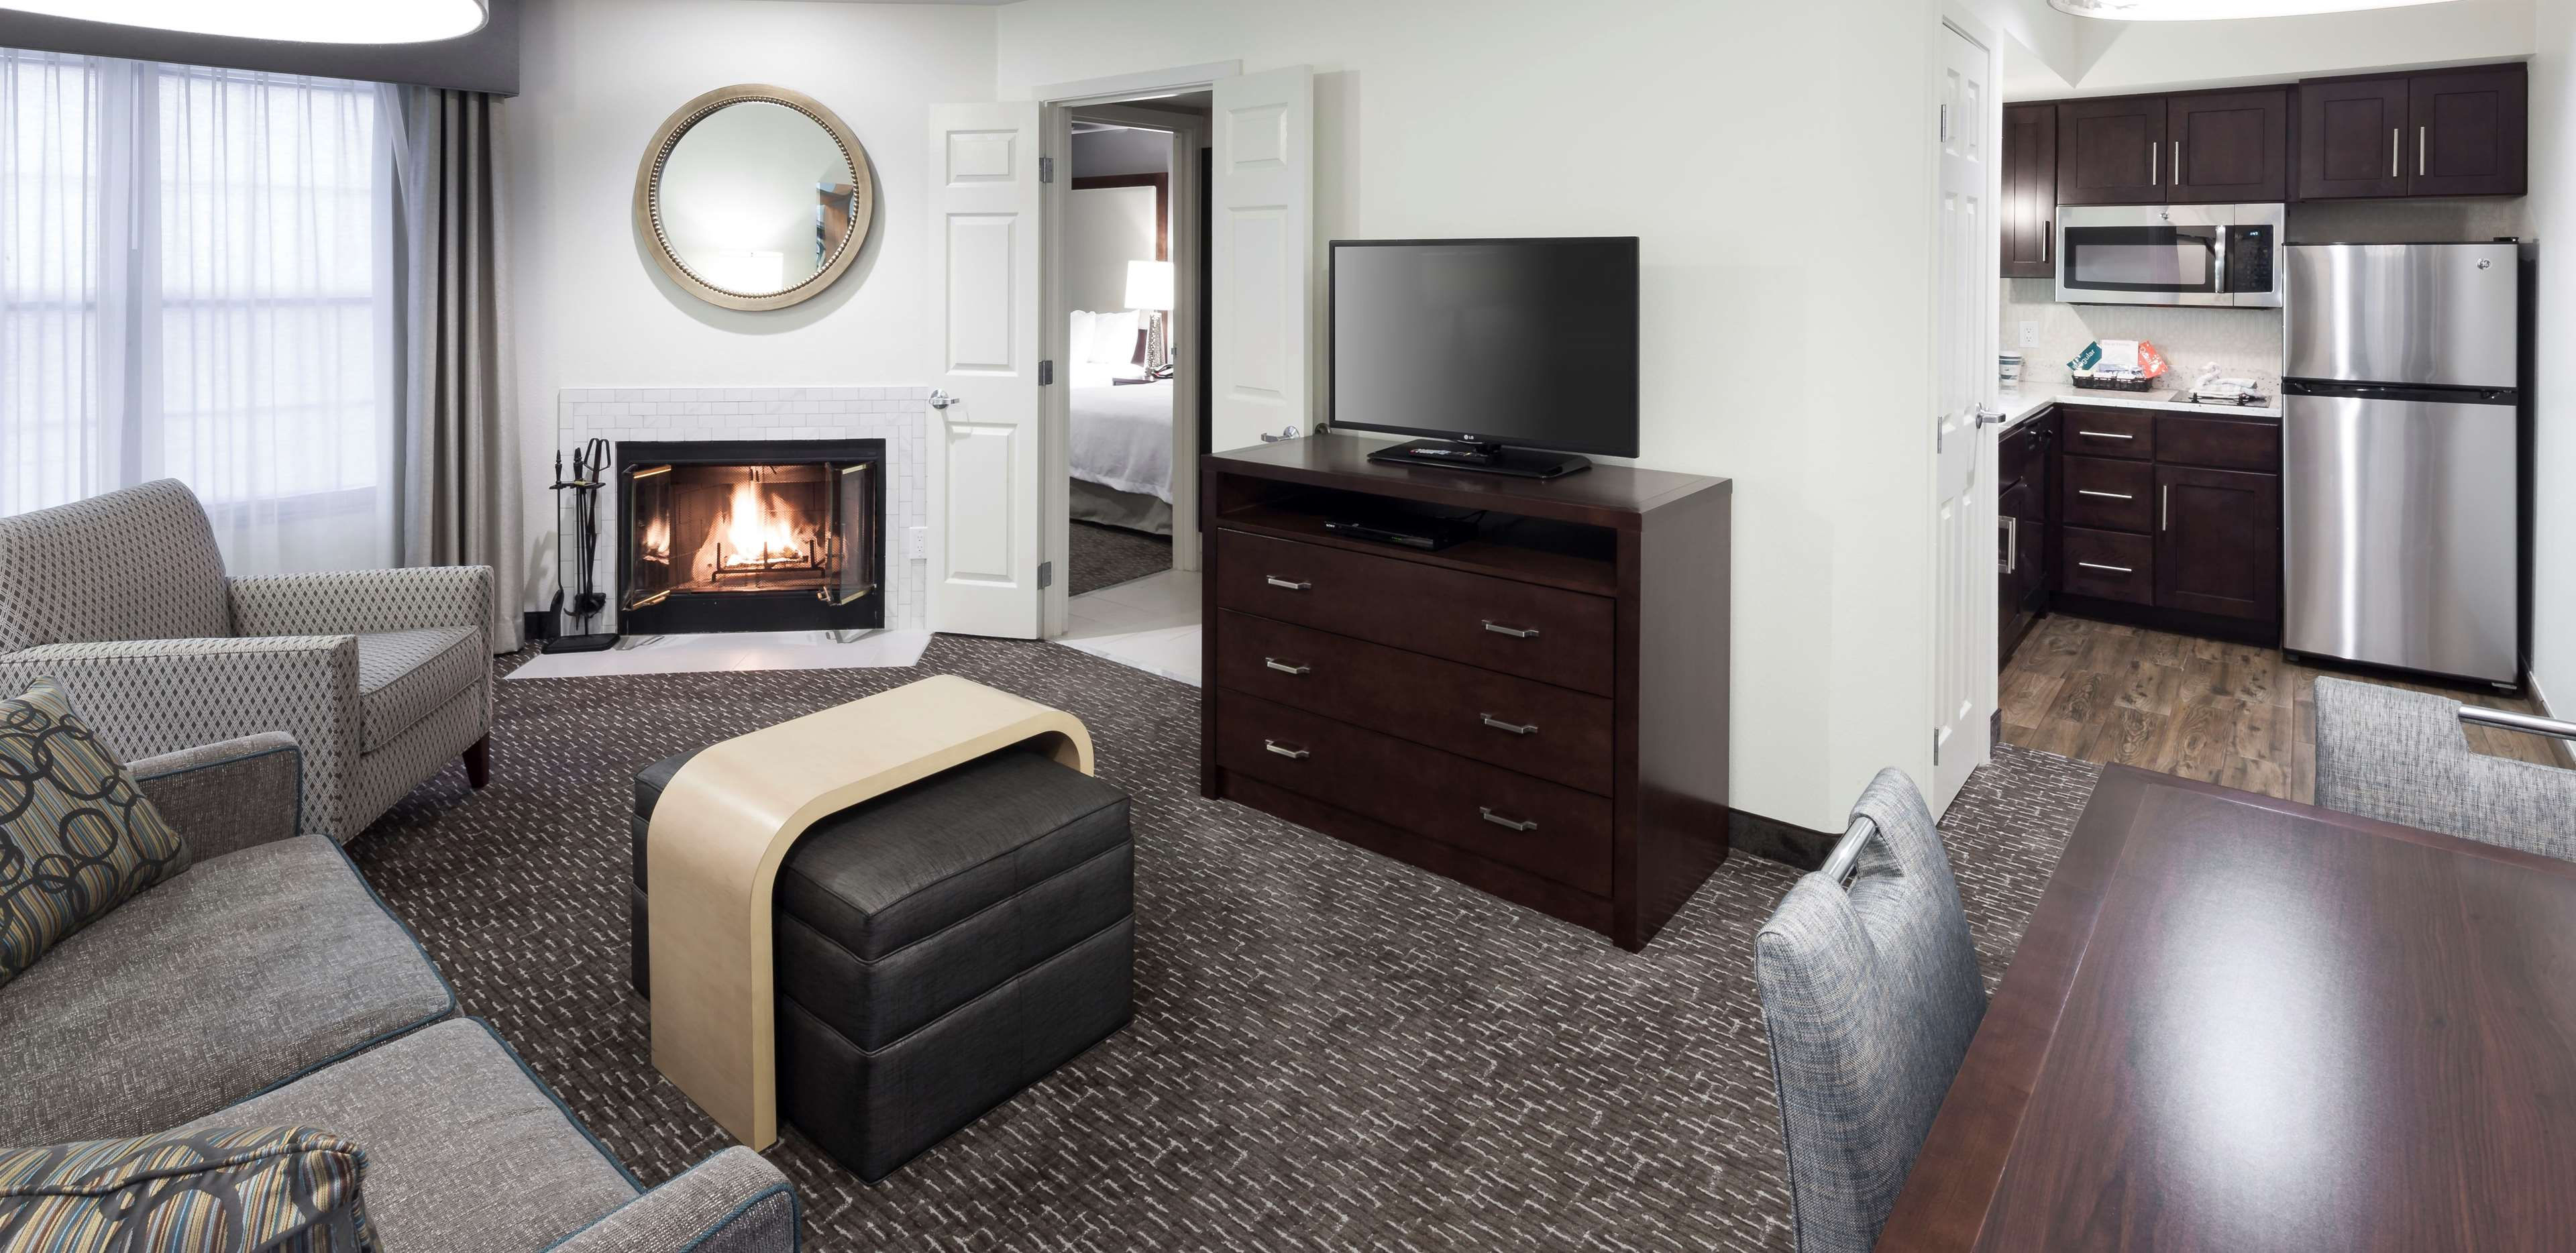 Homewood Suites by Hilton San Jose Airport-Silicon Valley image 19